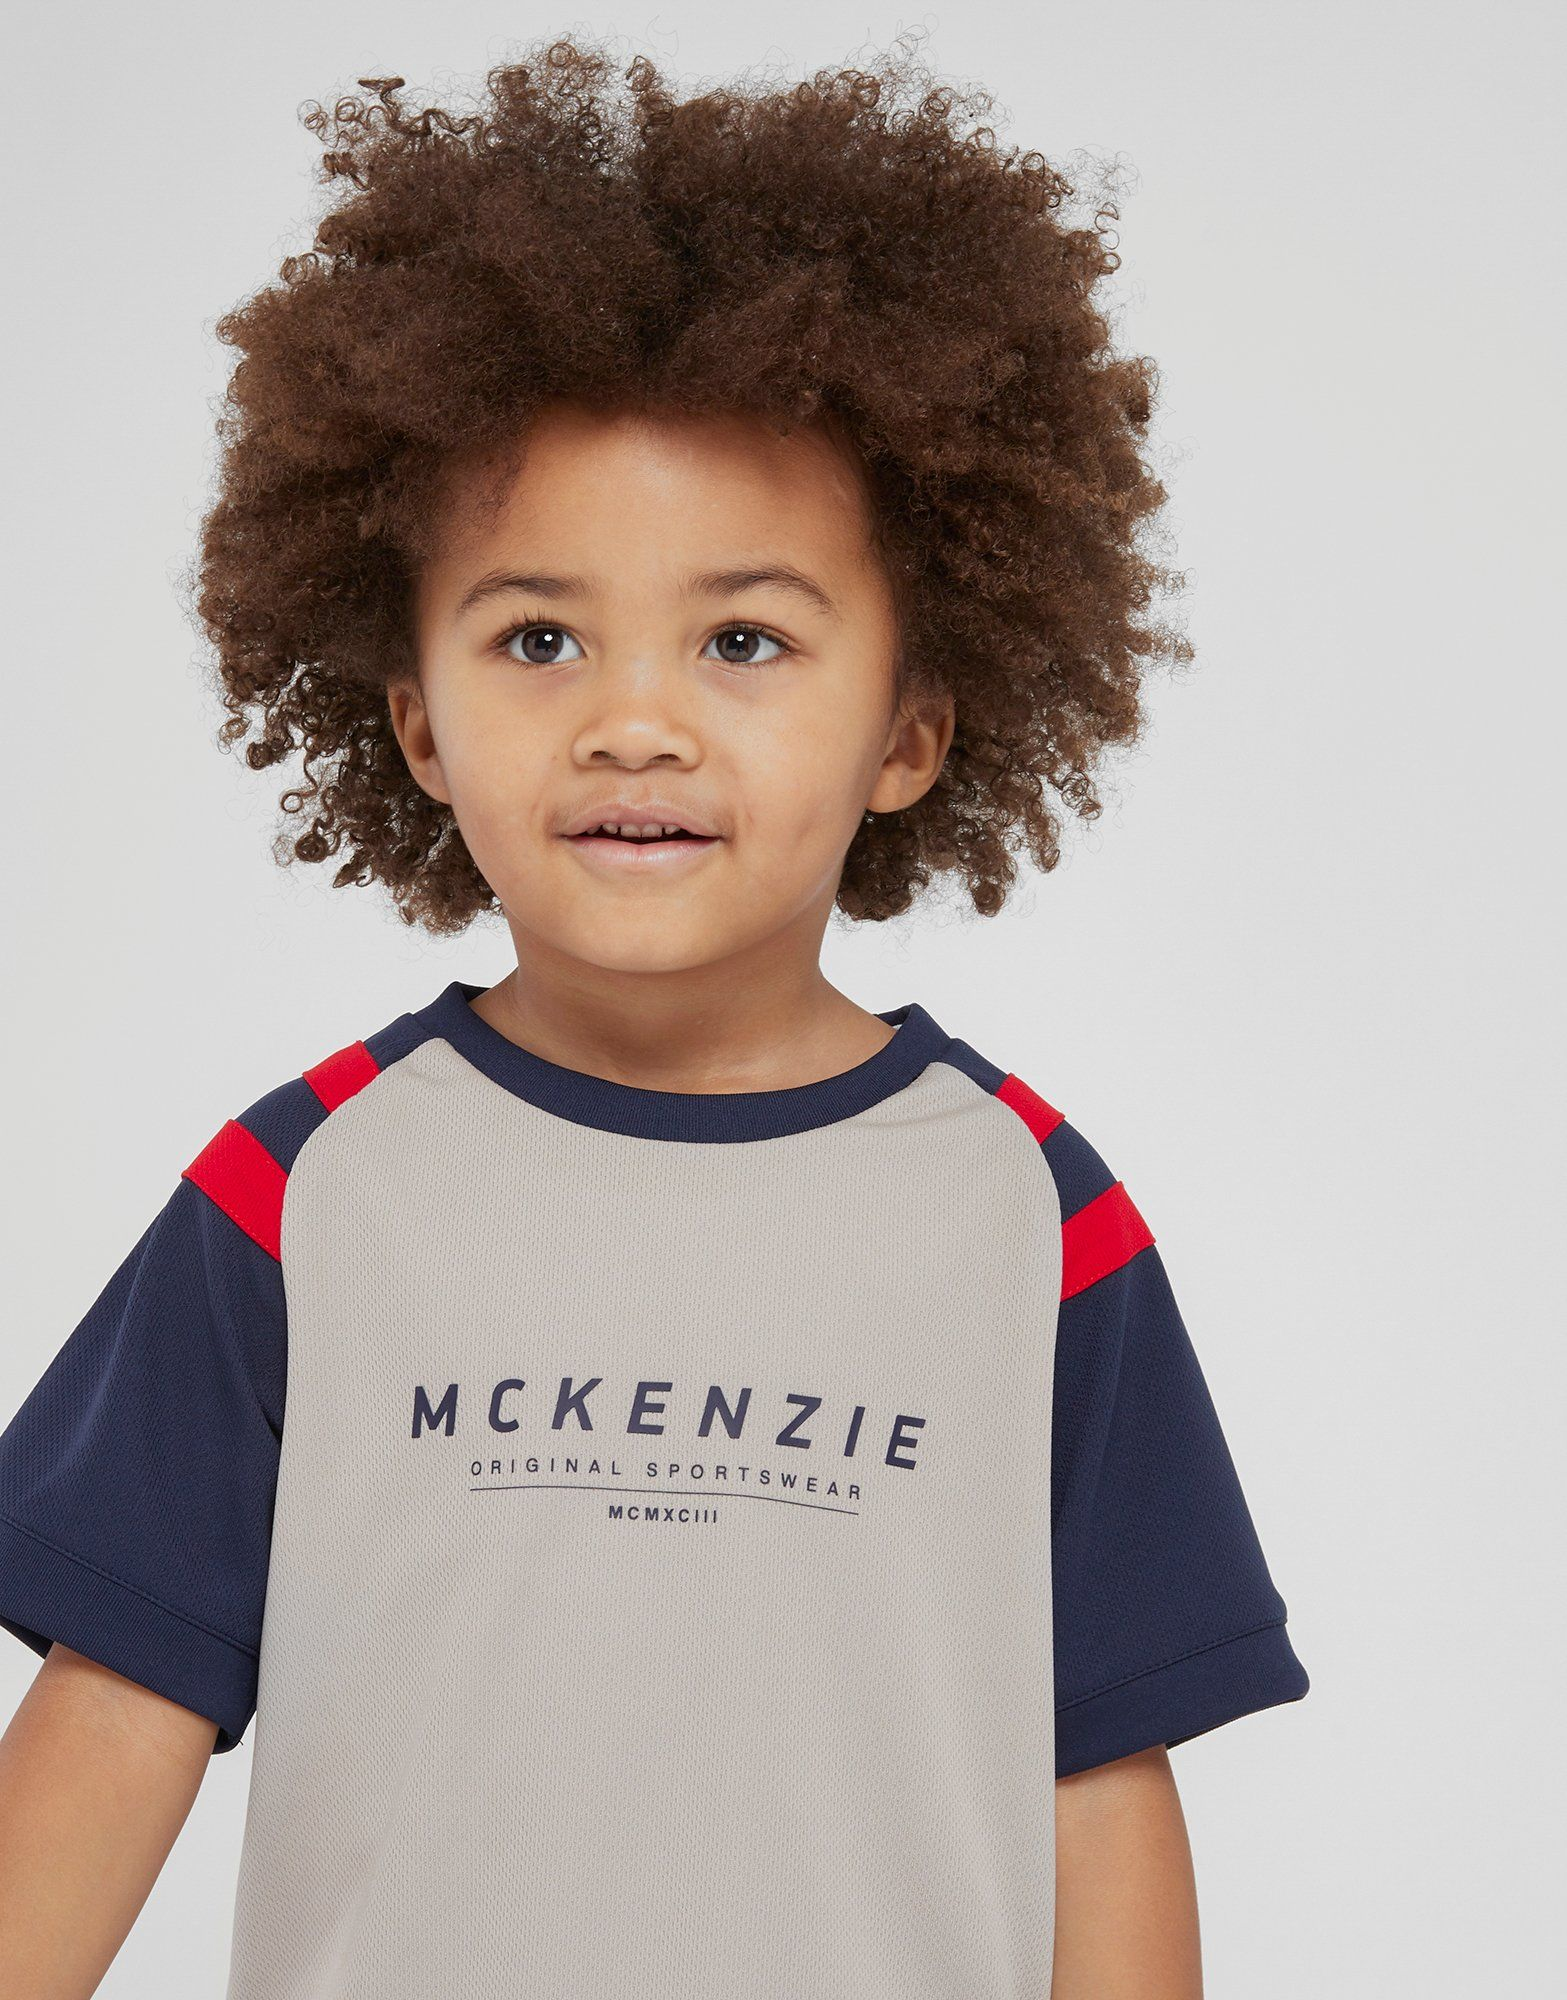 McKenzie Orson T-Shirt Children